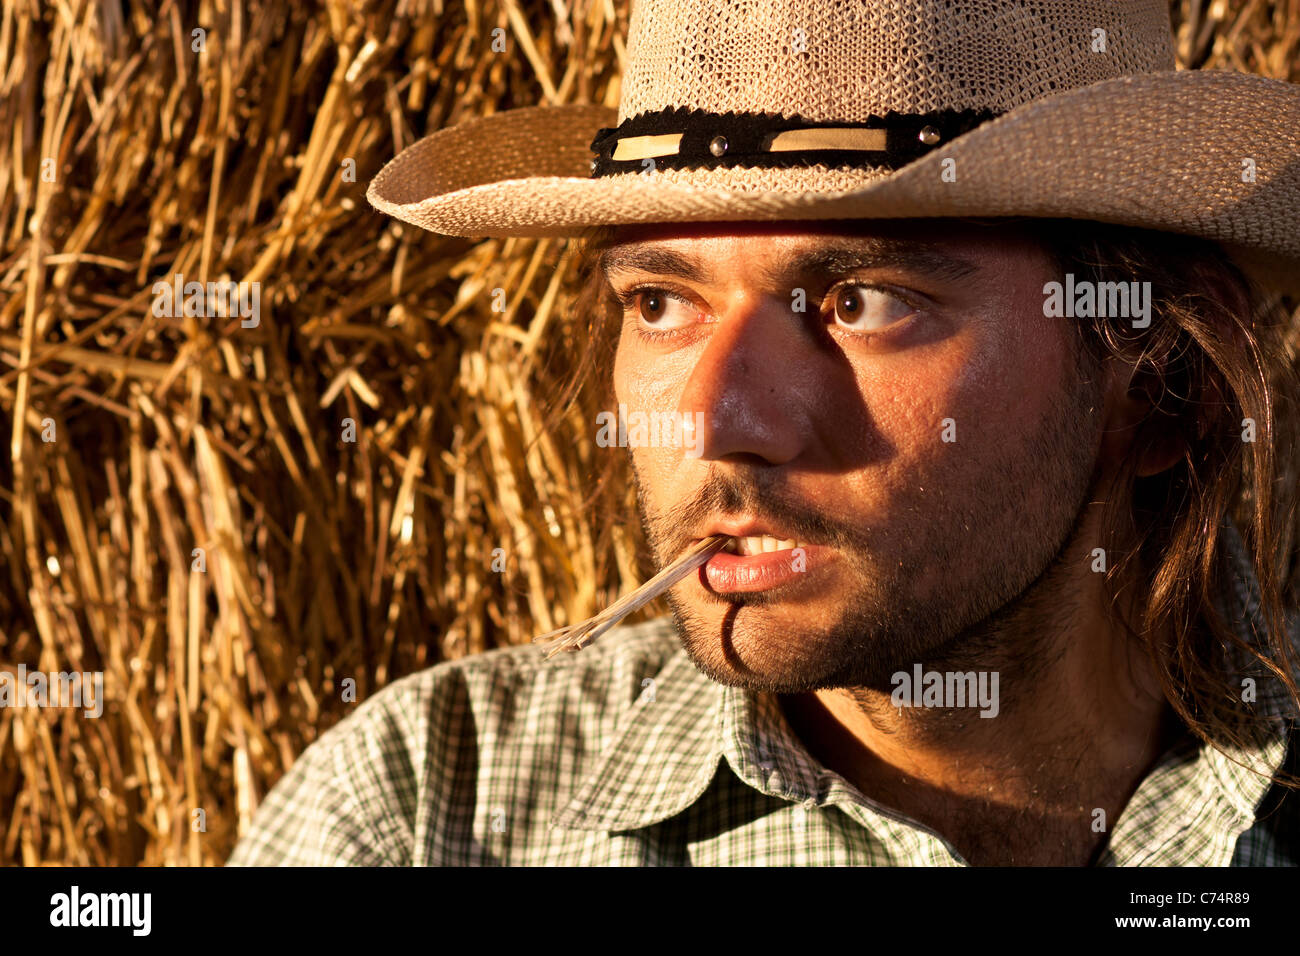 Tough Cowboy with Straw in His Mouth - Stock Image